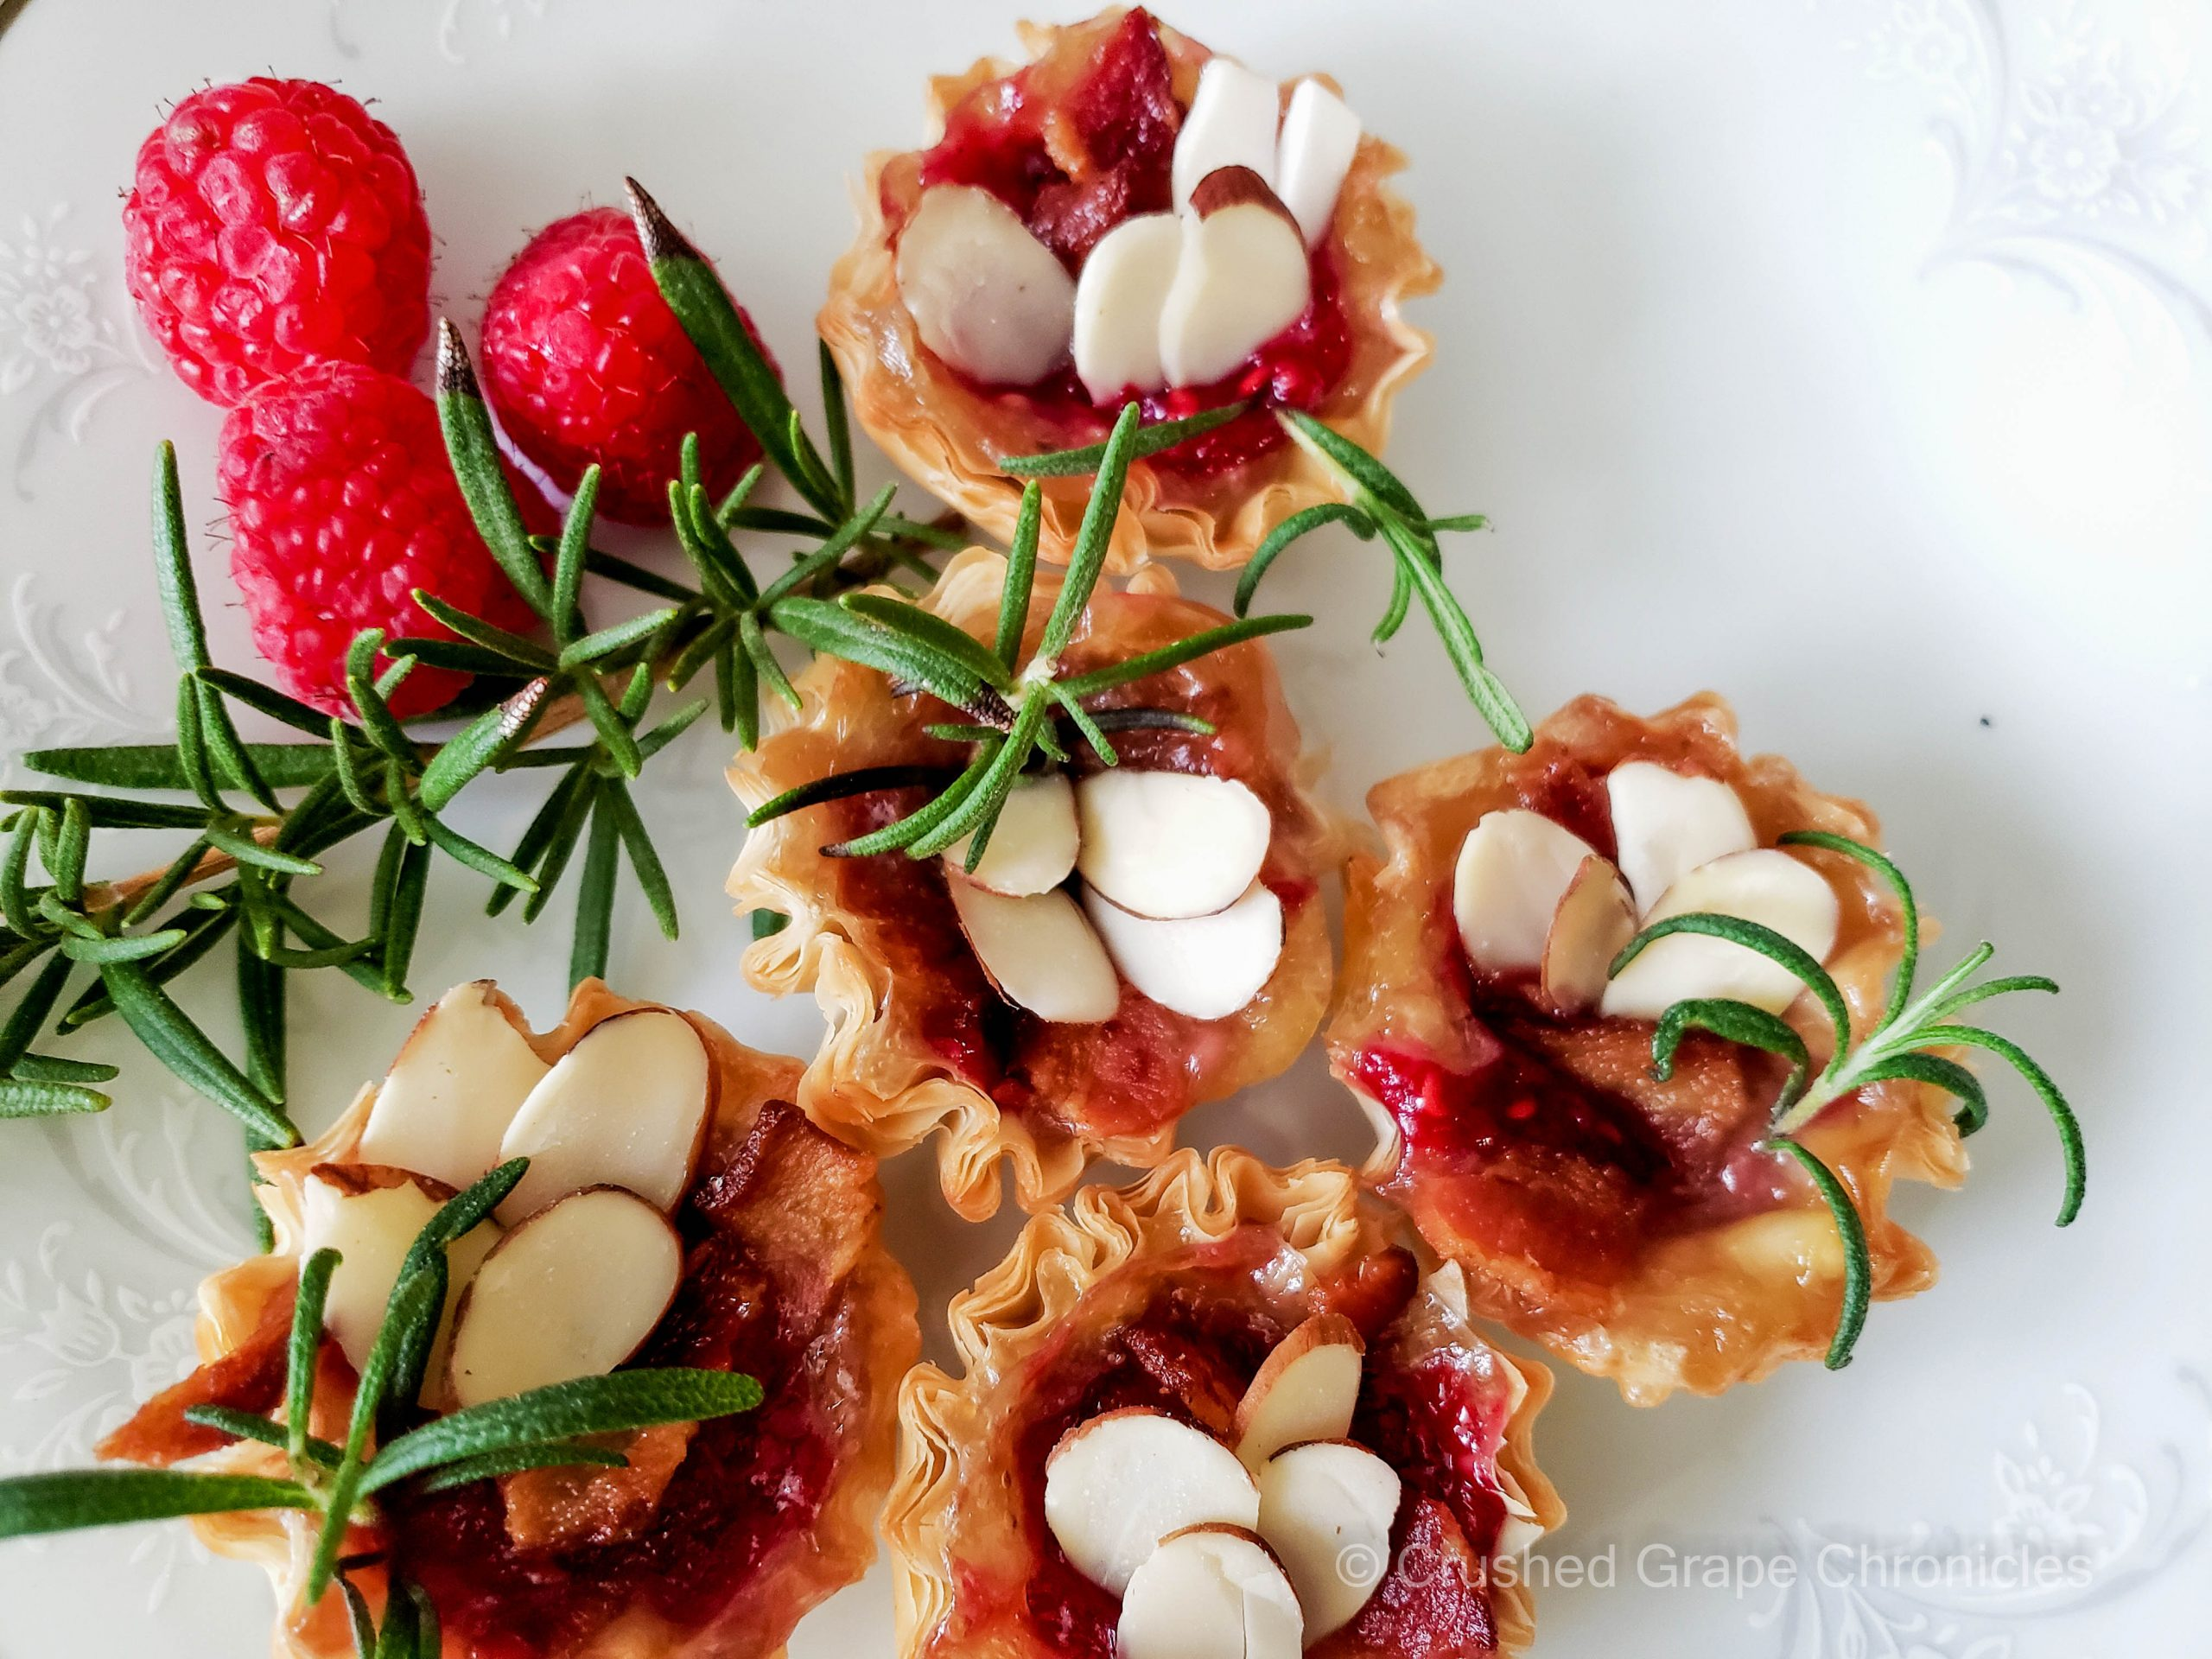 Phyllo cups filled with brie, raspberry sauce, bacon, rosemary and almonds